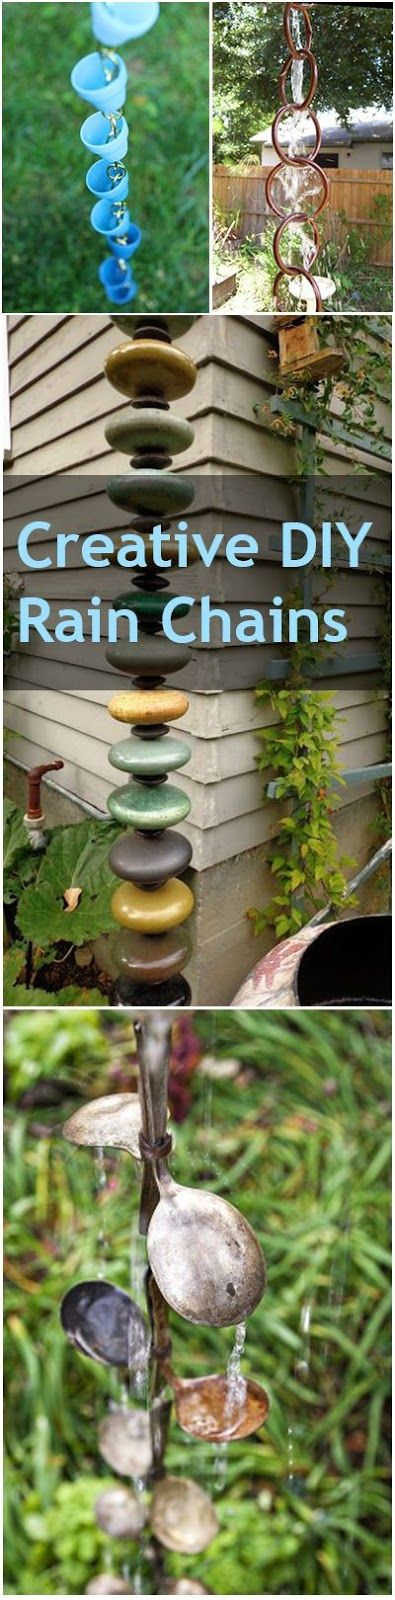 creative diy rain chains more